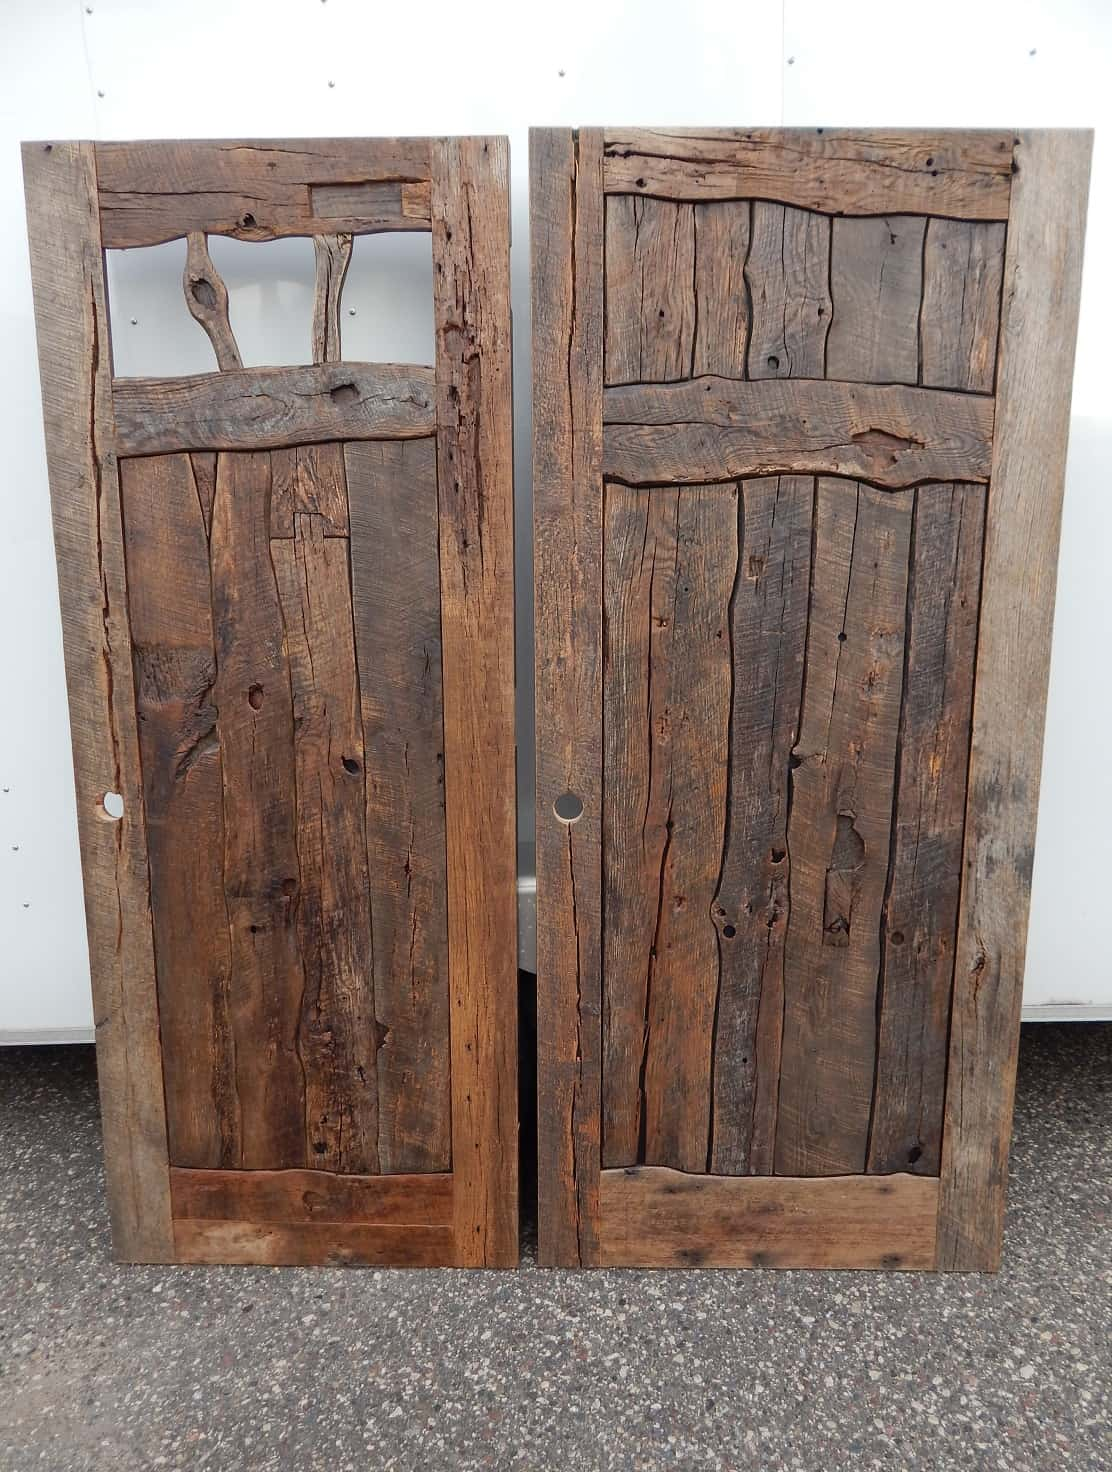 Reclaim Oak Crooked Interior Doors